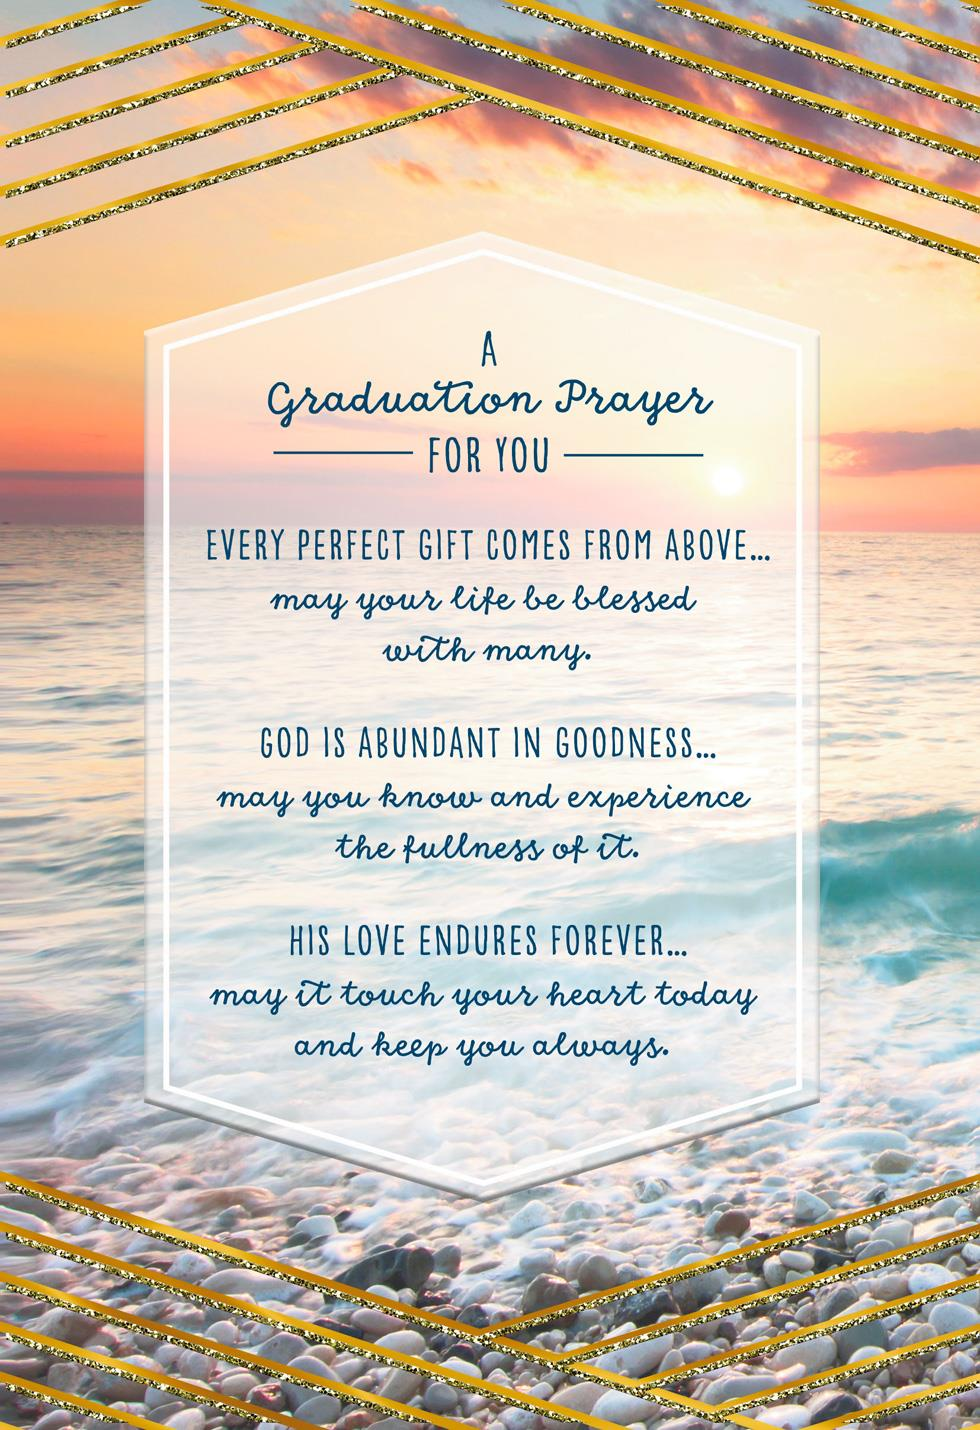 Prayer For You Religious Graduation Card Greeting Cards Hallmark